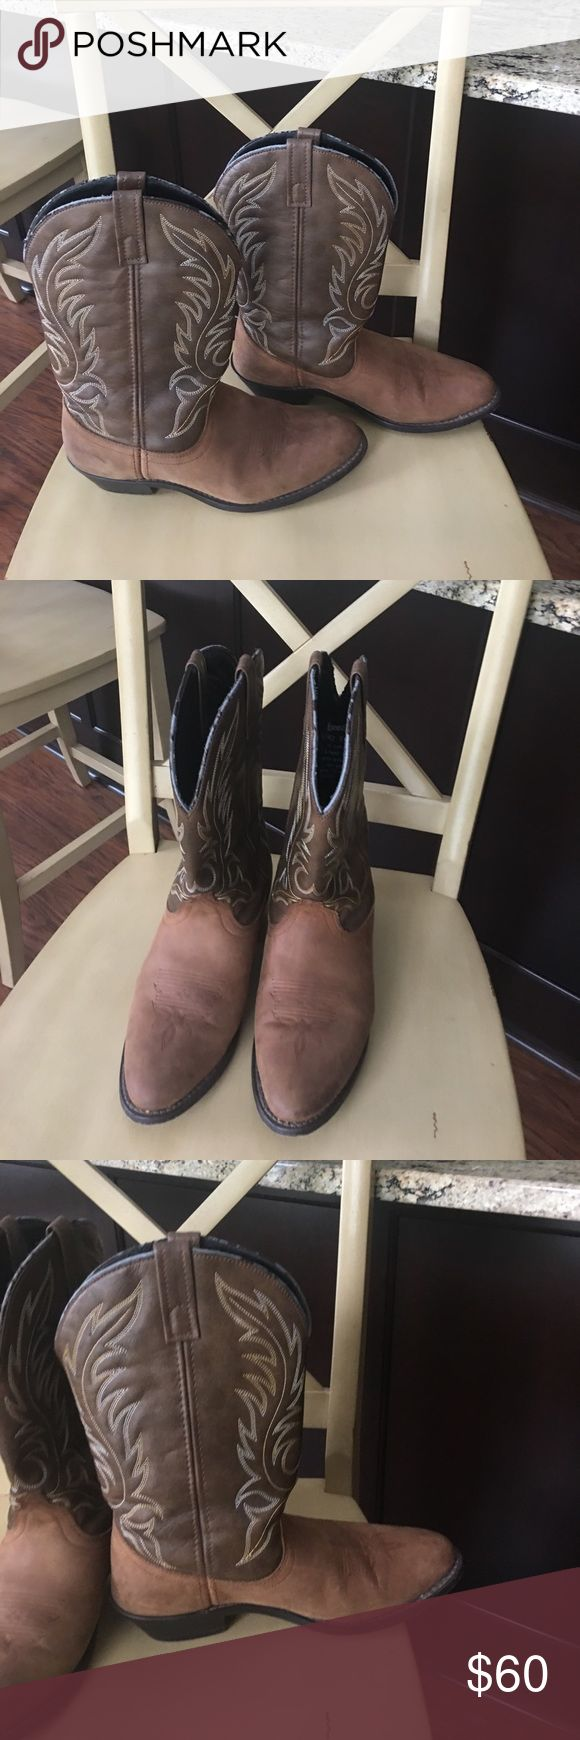 LAREDO leather western boots Worn just a few times. Excellent condition! Laredo Other